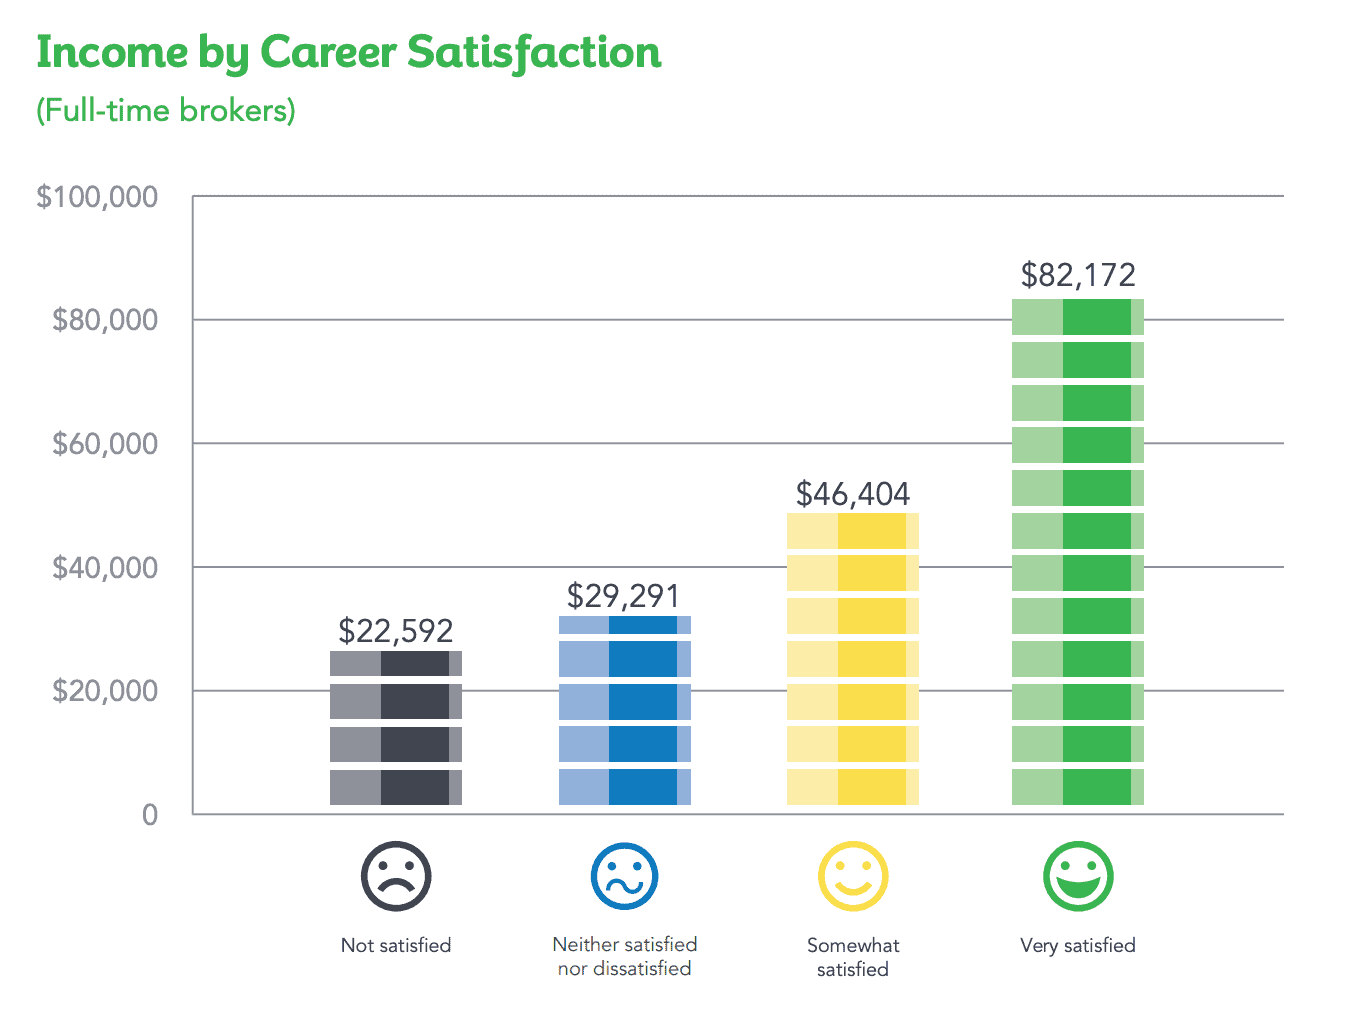 Broker income by career satisfaction